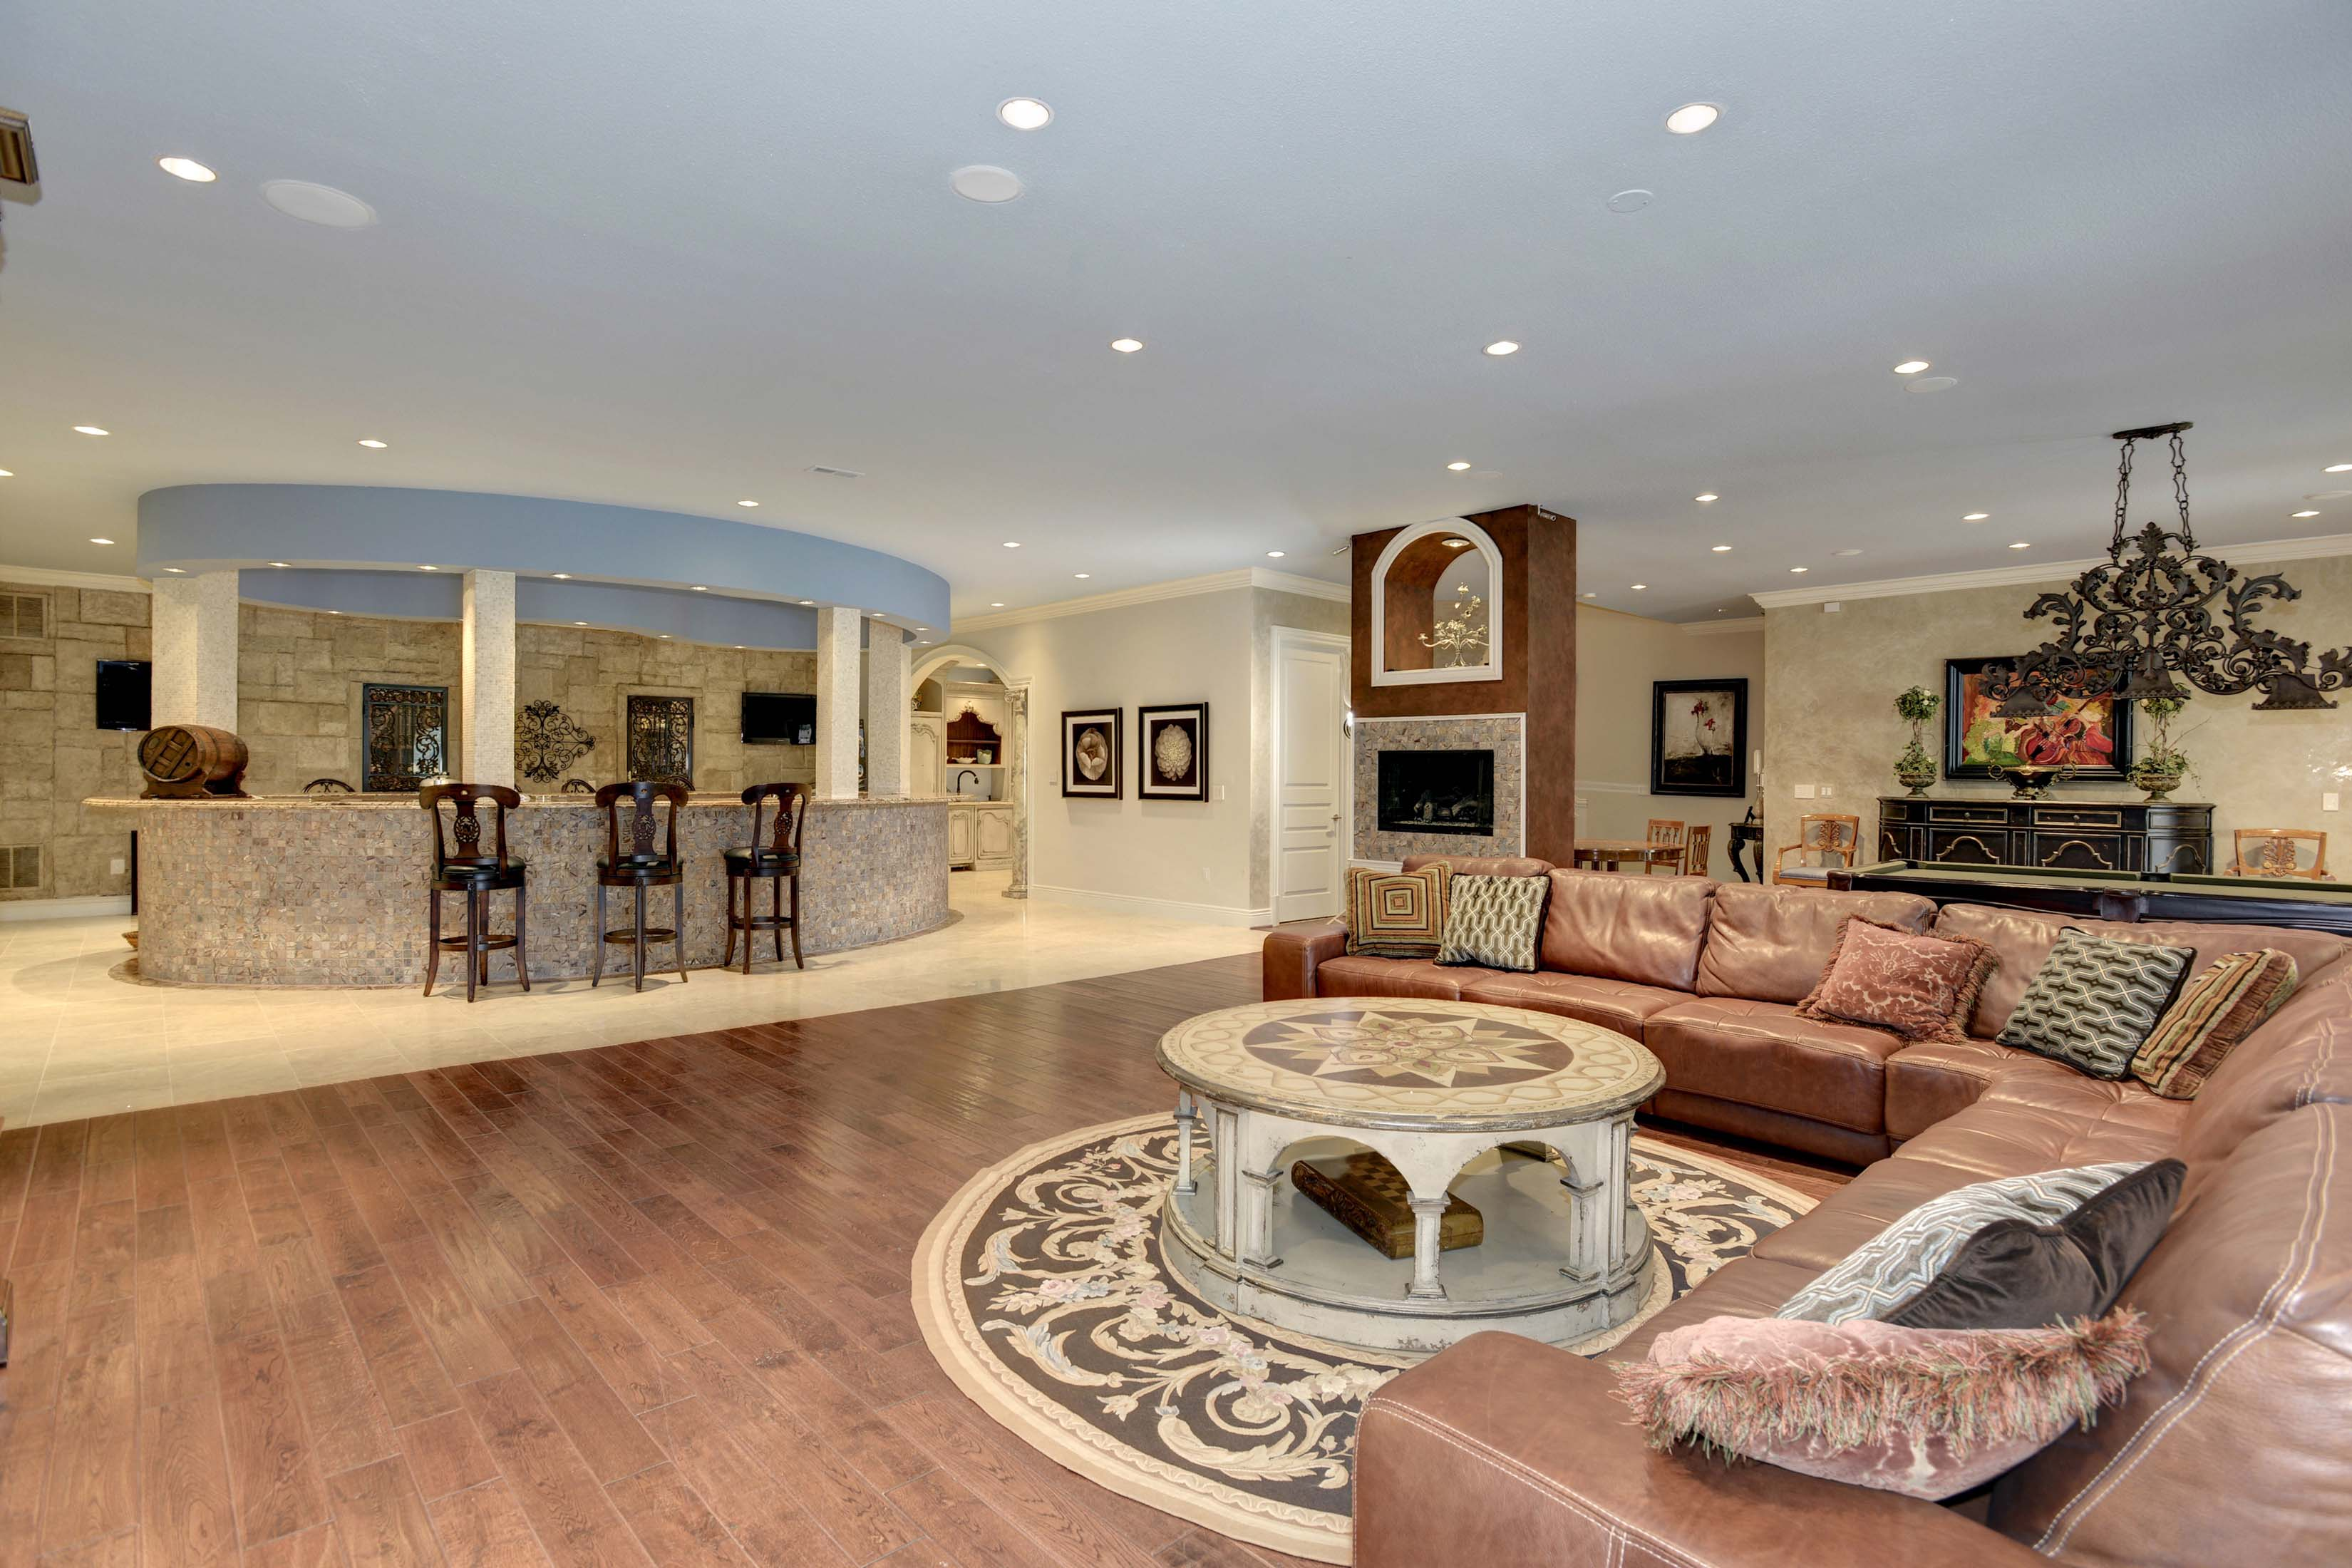 Oval-shaped bar in mansion with seating area in Potomac, Maryland